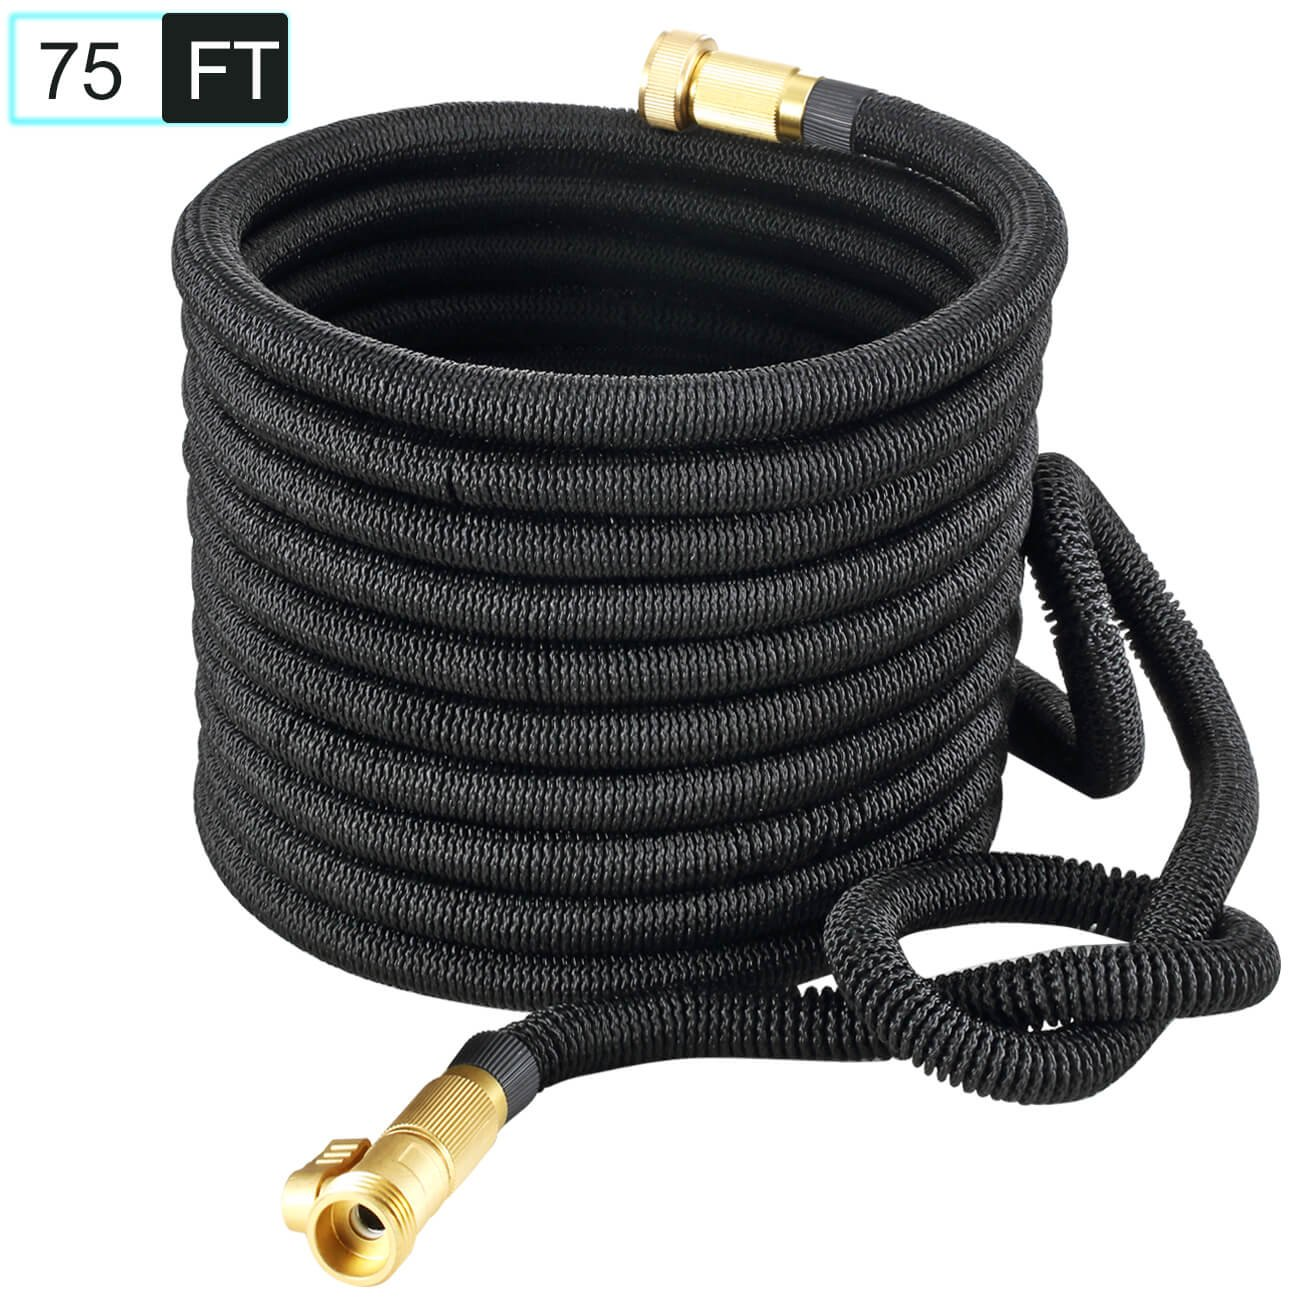 PEGZOS Improved 75FT Expandable Water Garden Hoses Expanding Water Hose with New Improved Double Latex Core, Extra Density Outside Woven, Solid Brass Connector for Car Outdoor Lawn Use (75FT, Black)